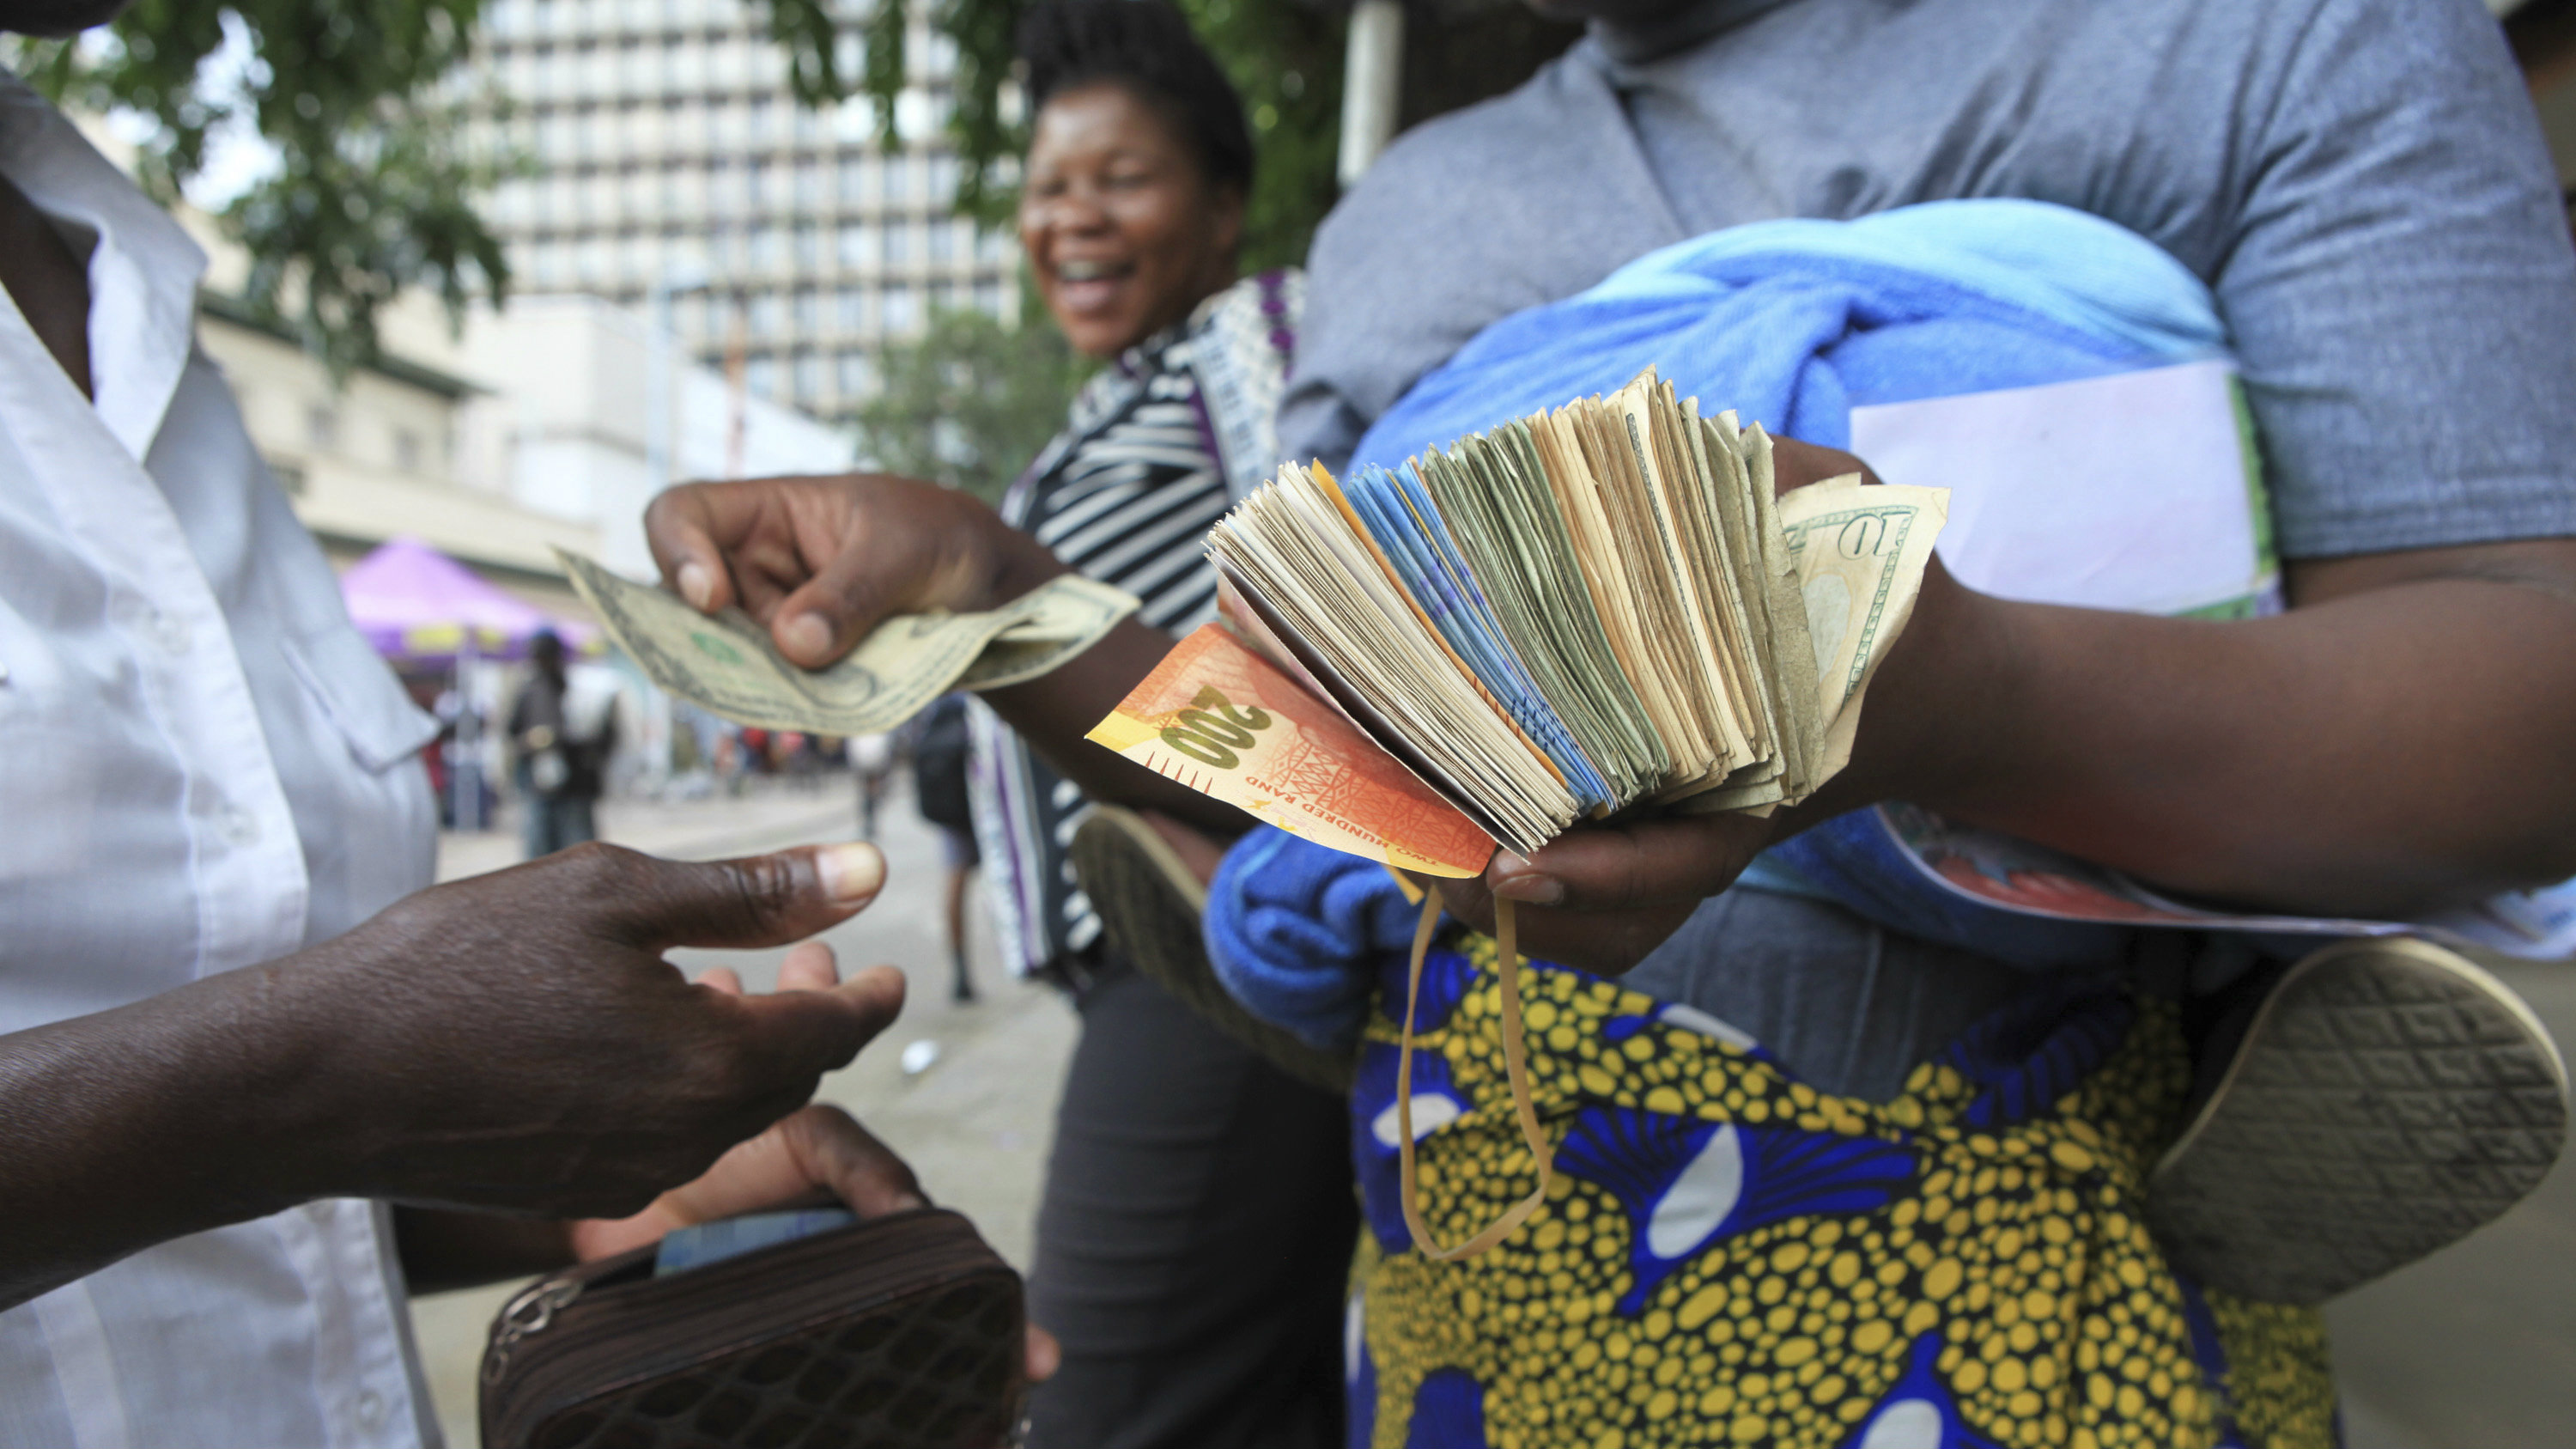 A currency trader performs a transaction on the streets of Harare in this Friday, Oct. 28, 2016 photo.